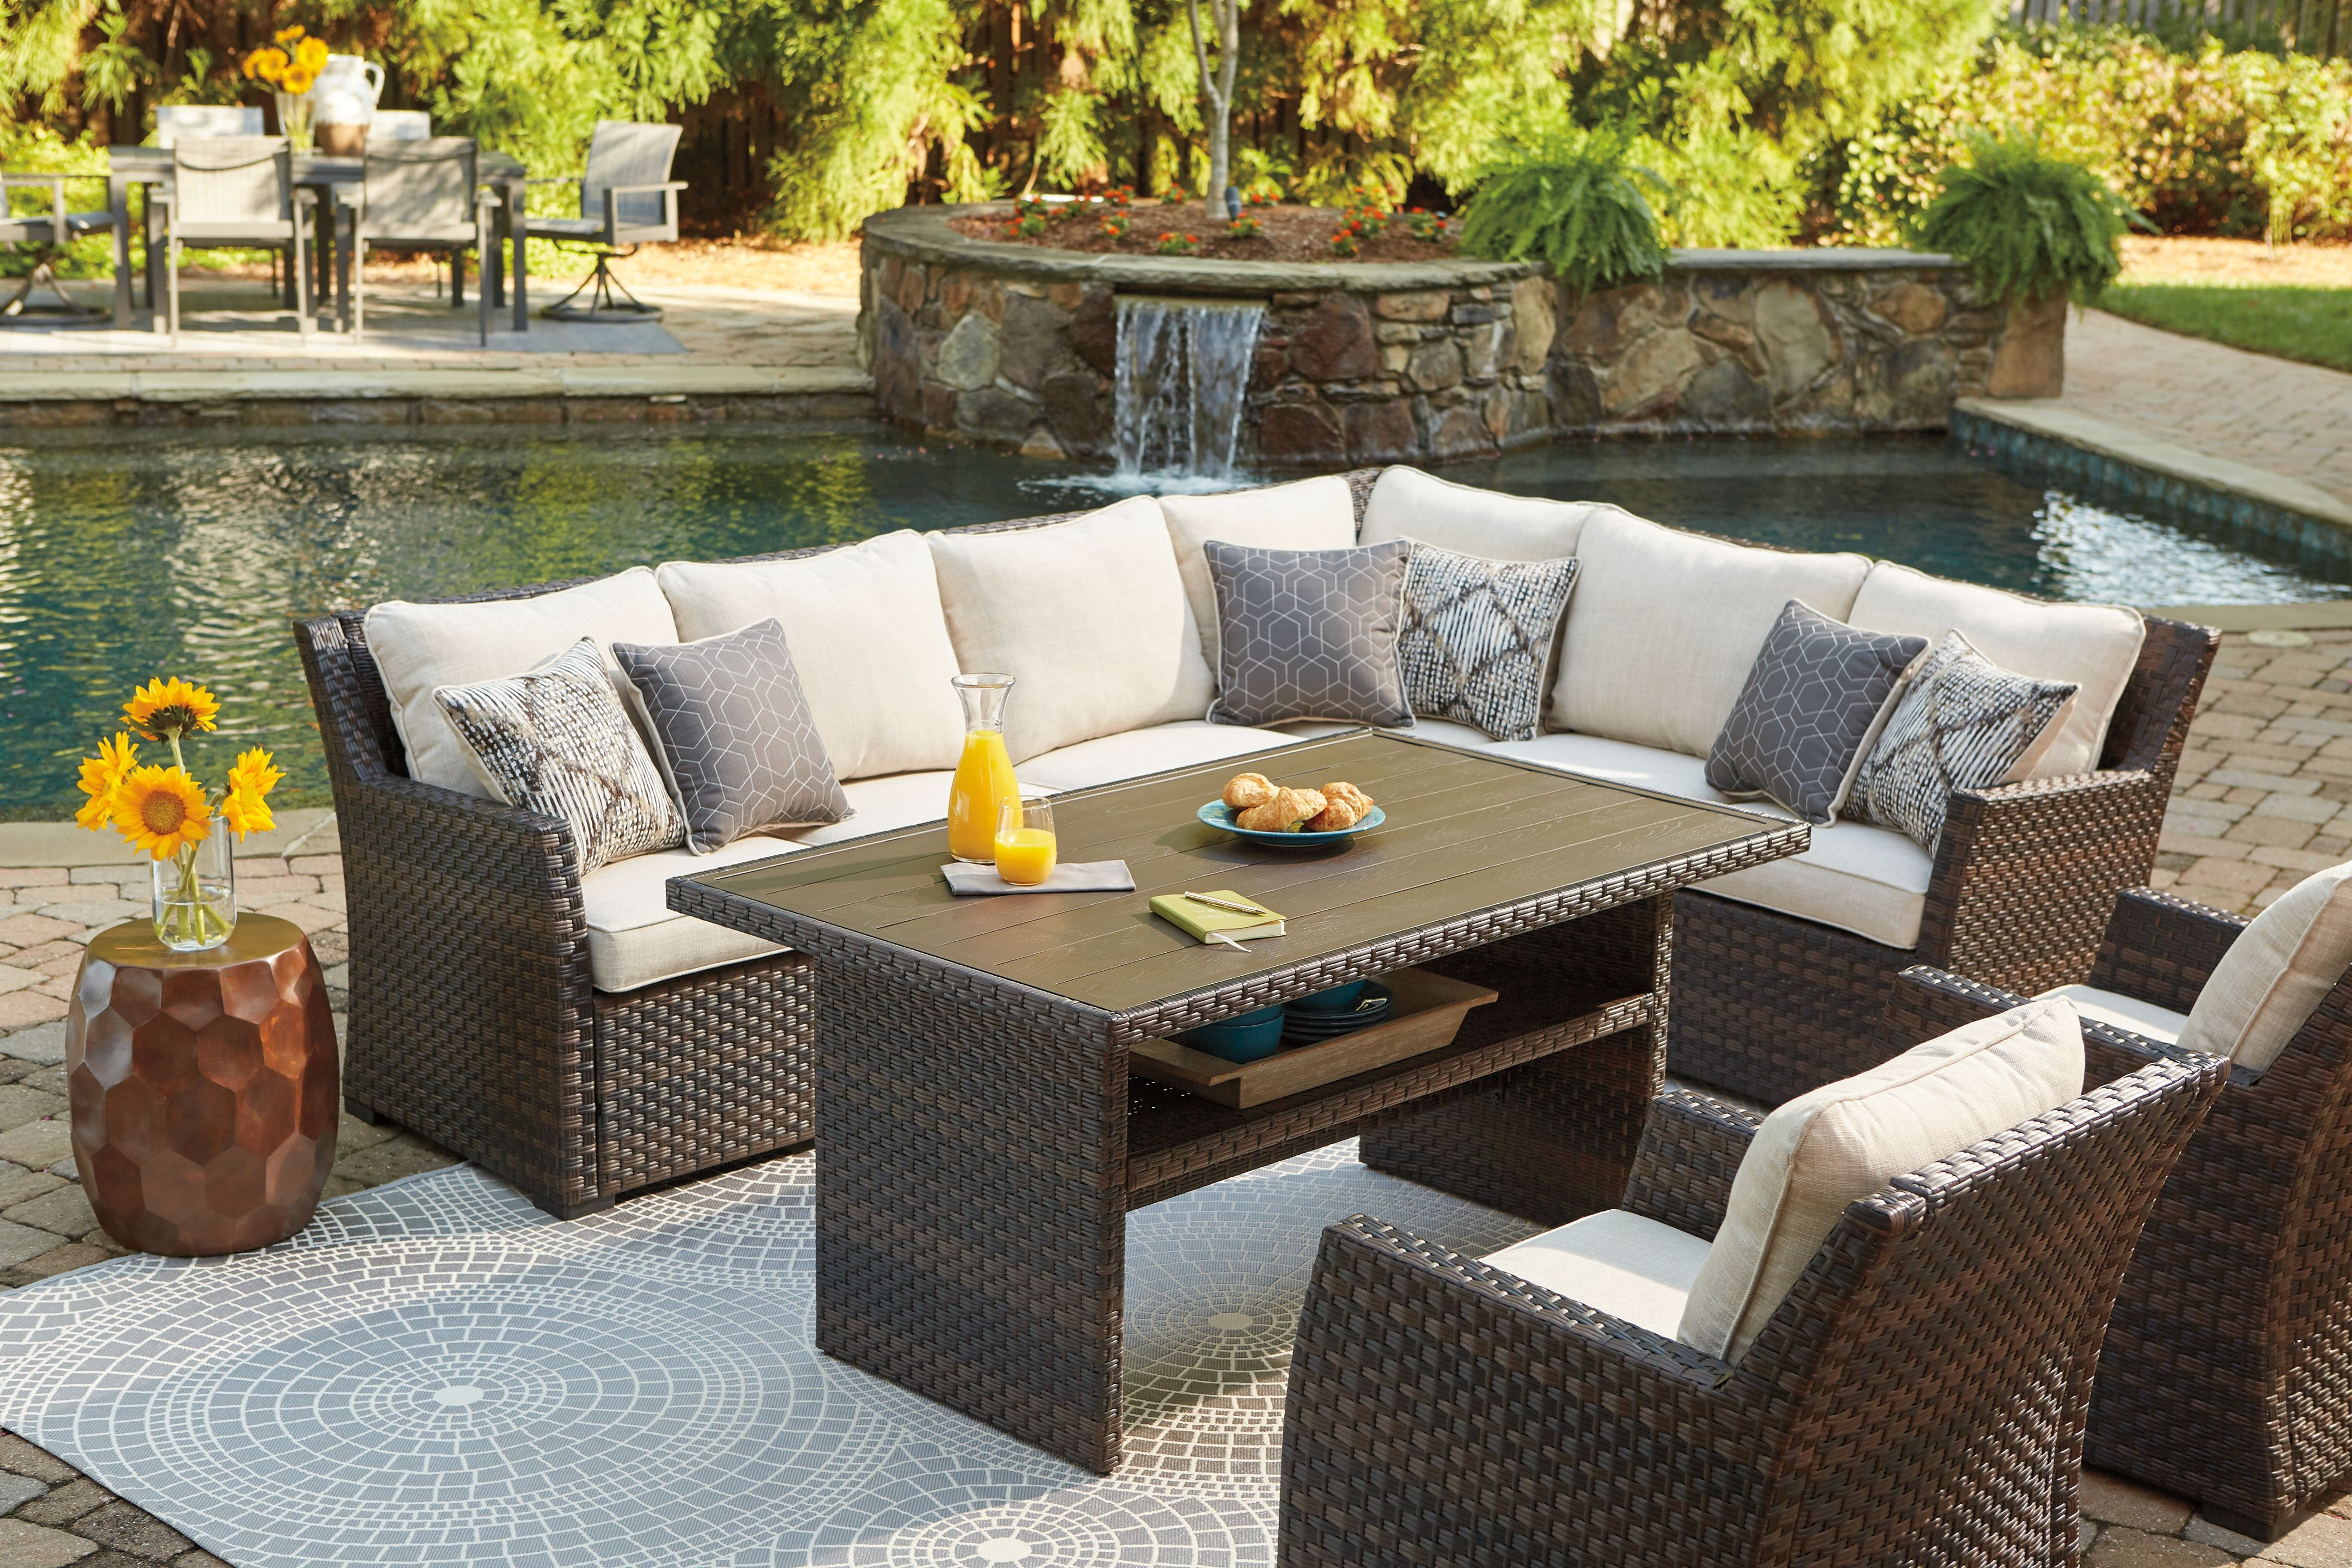 Easy Isle 3 Piece Sofa Sectional Chair With Cushion Ashley Furniture Homestore Patio Furniture Layout Patio Sectional Backyard Furniture